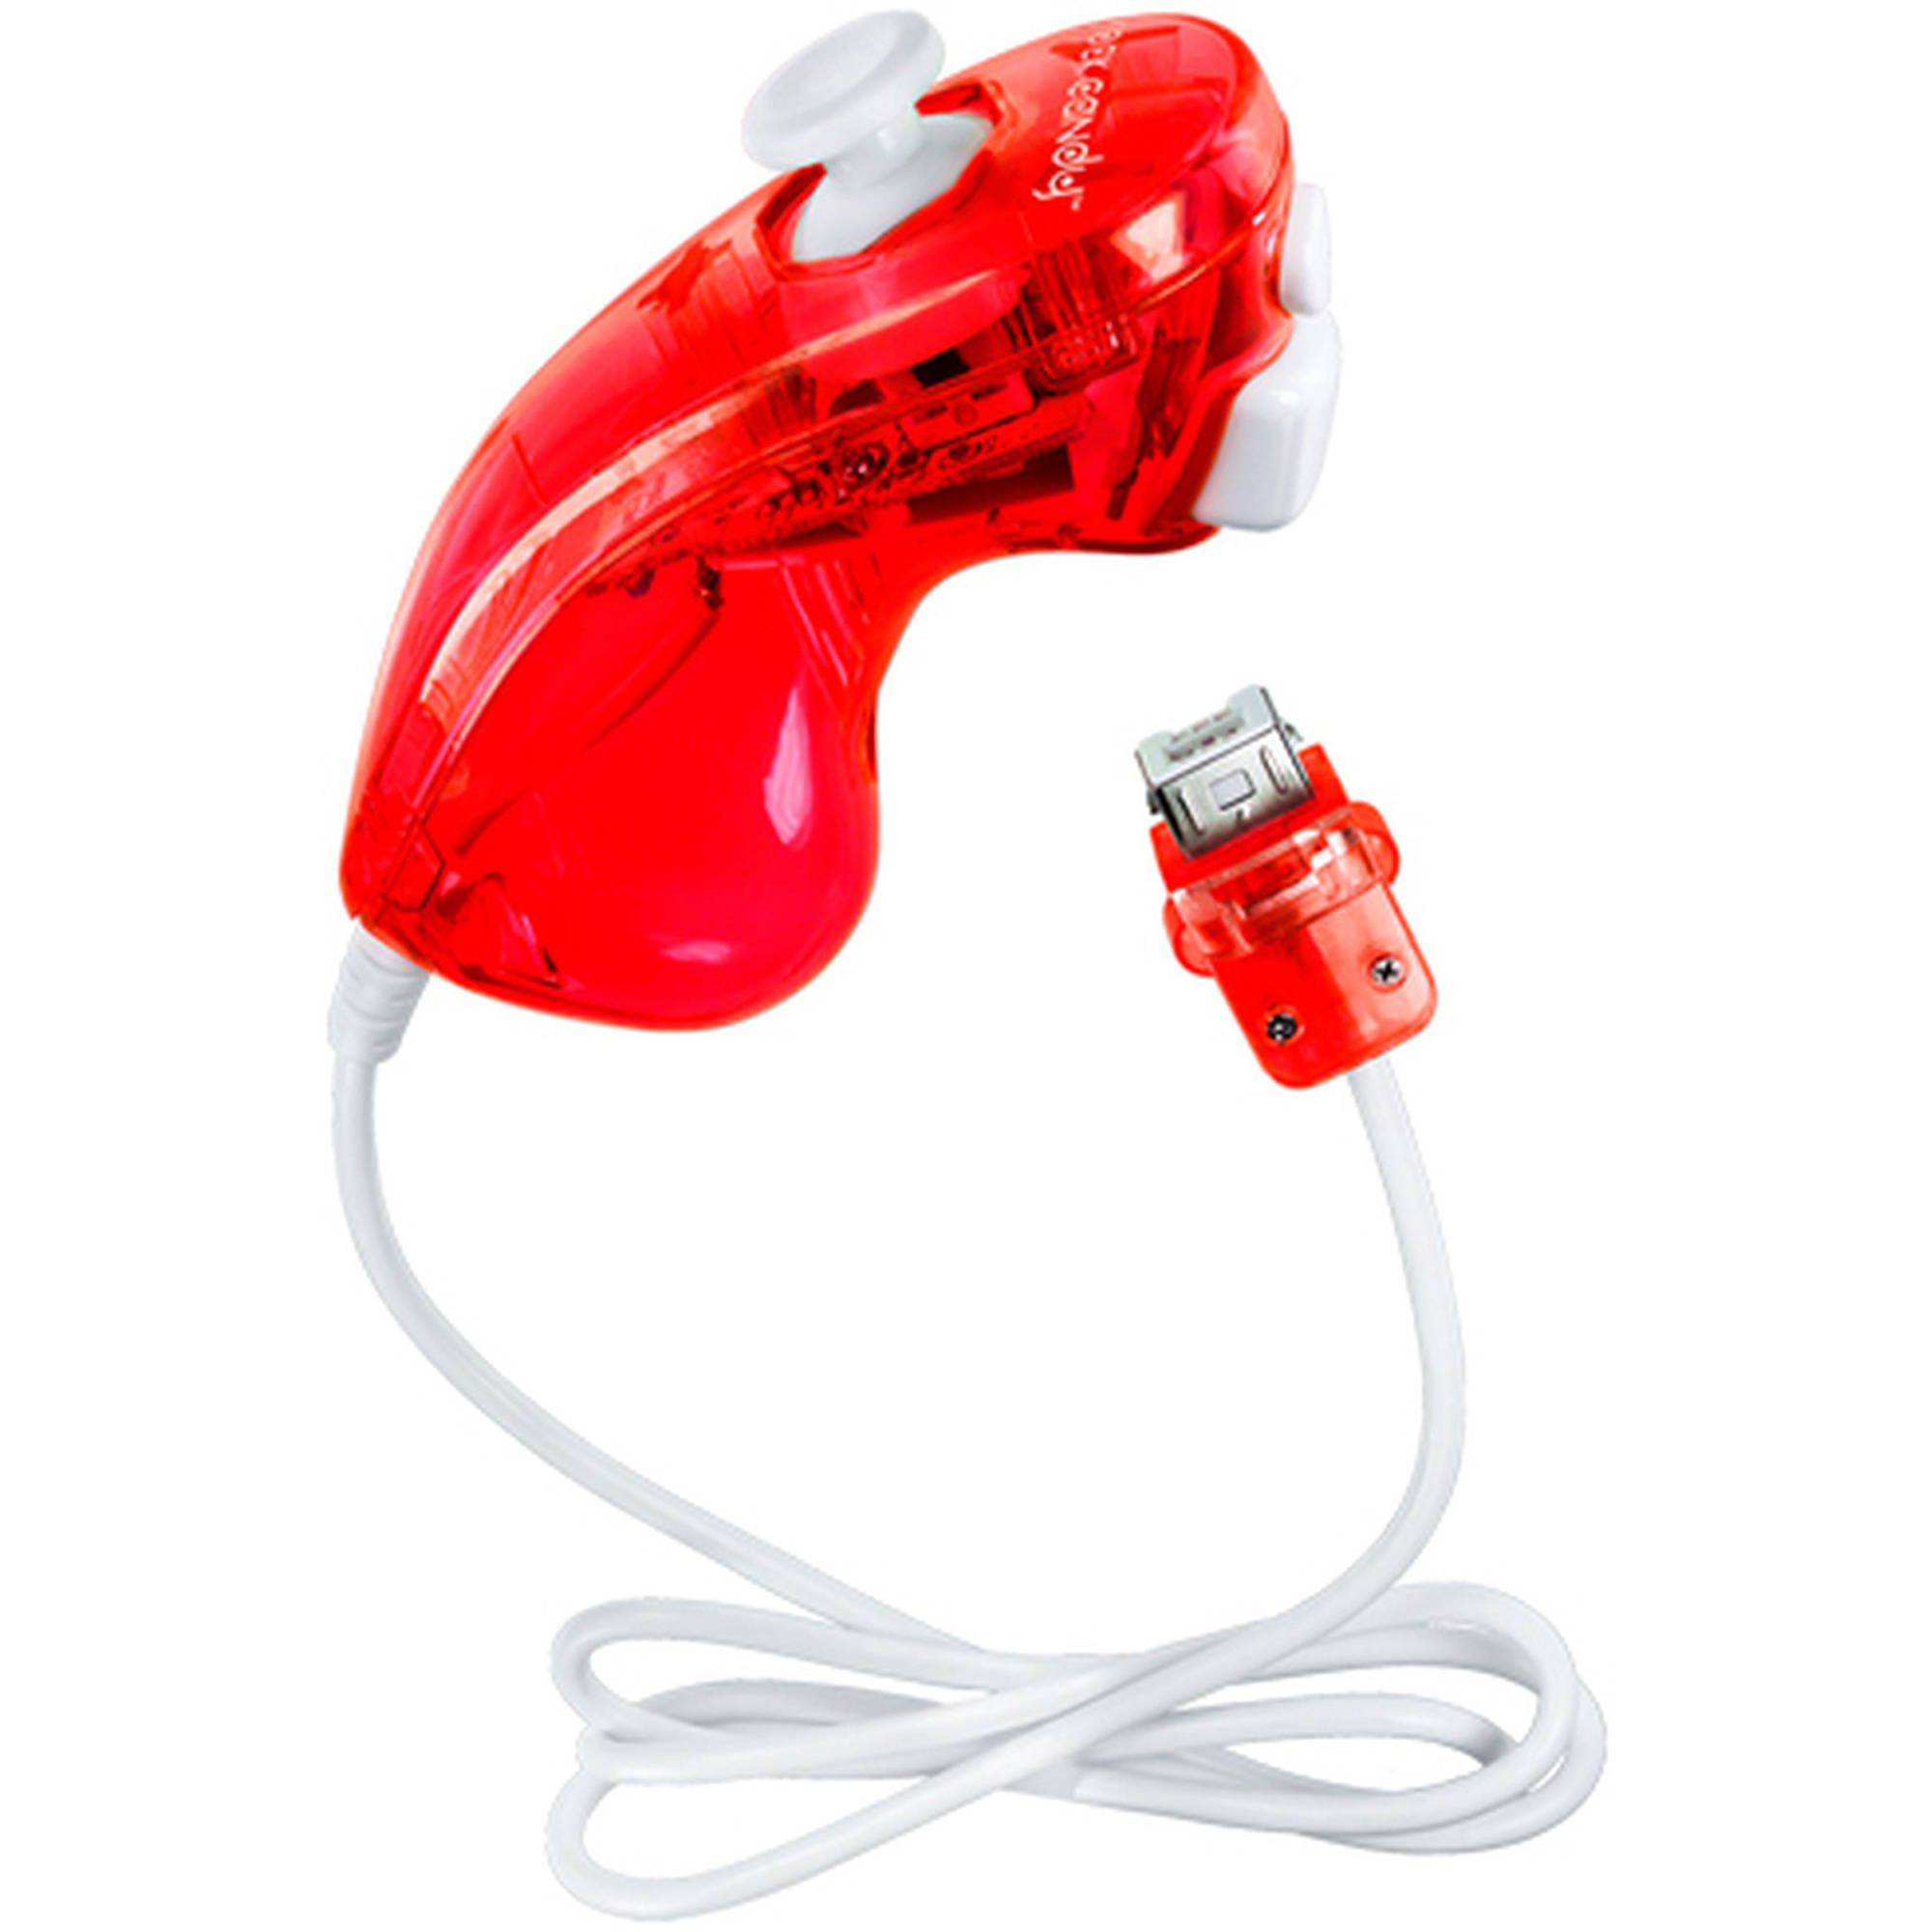 Rock Candy 8580R Control Stick, Red (Wii) by PDP